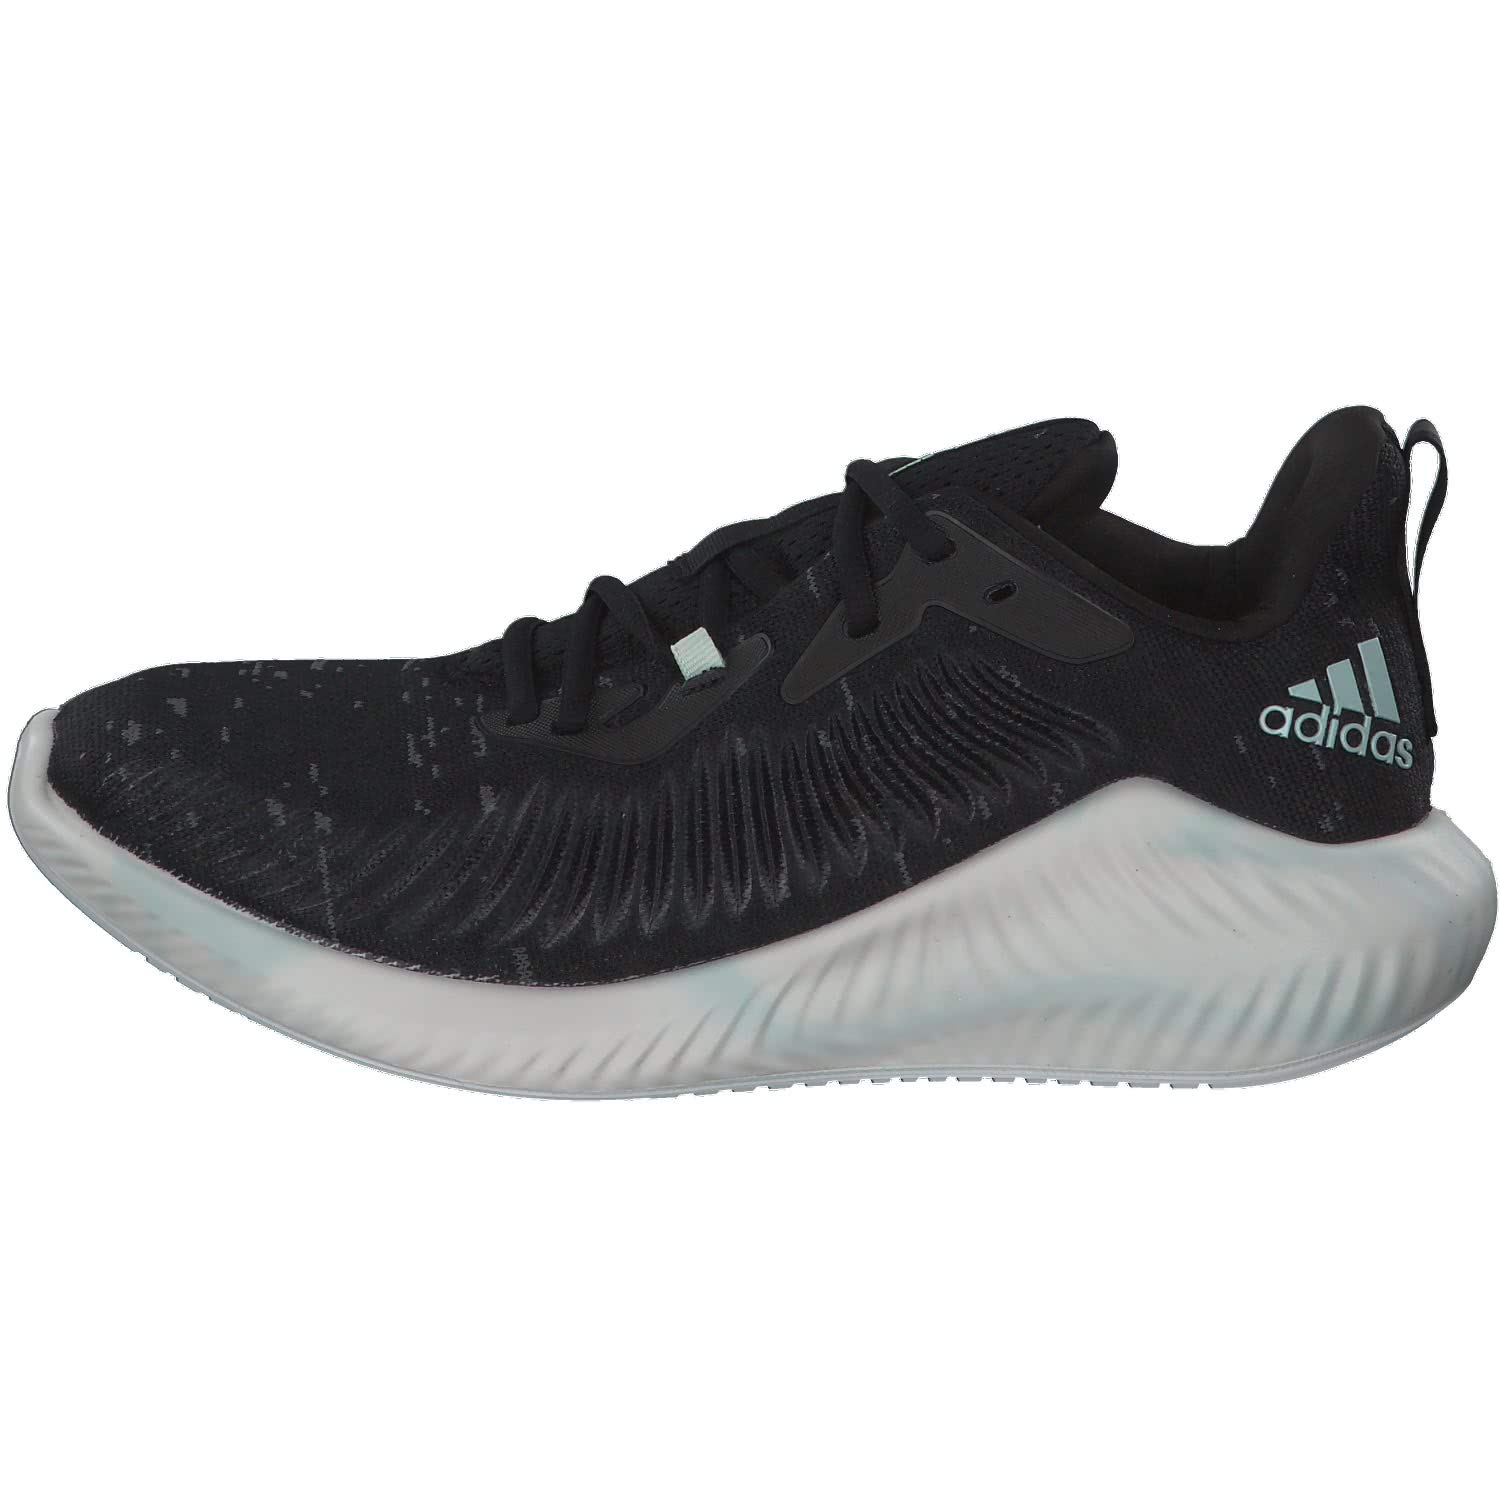 hipocresía Notorio mermelada  Buy Adidas Men's Alphabounce+ Parley Cblack/Lingrn/Ftwwht Running Shoes - 6  UK (39 EU) (G28372) at Amazon.in